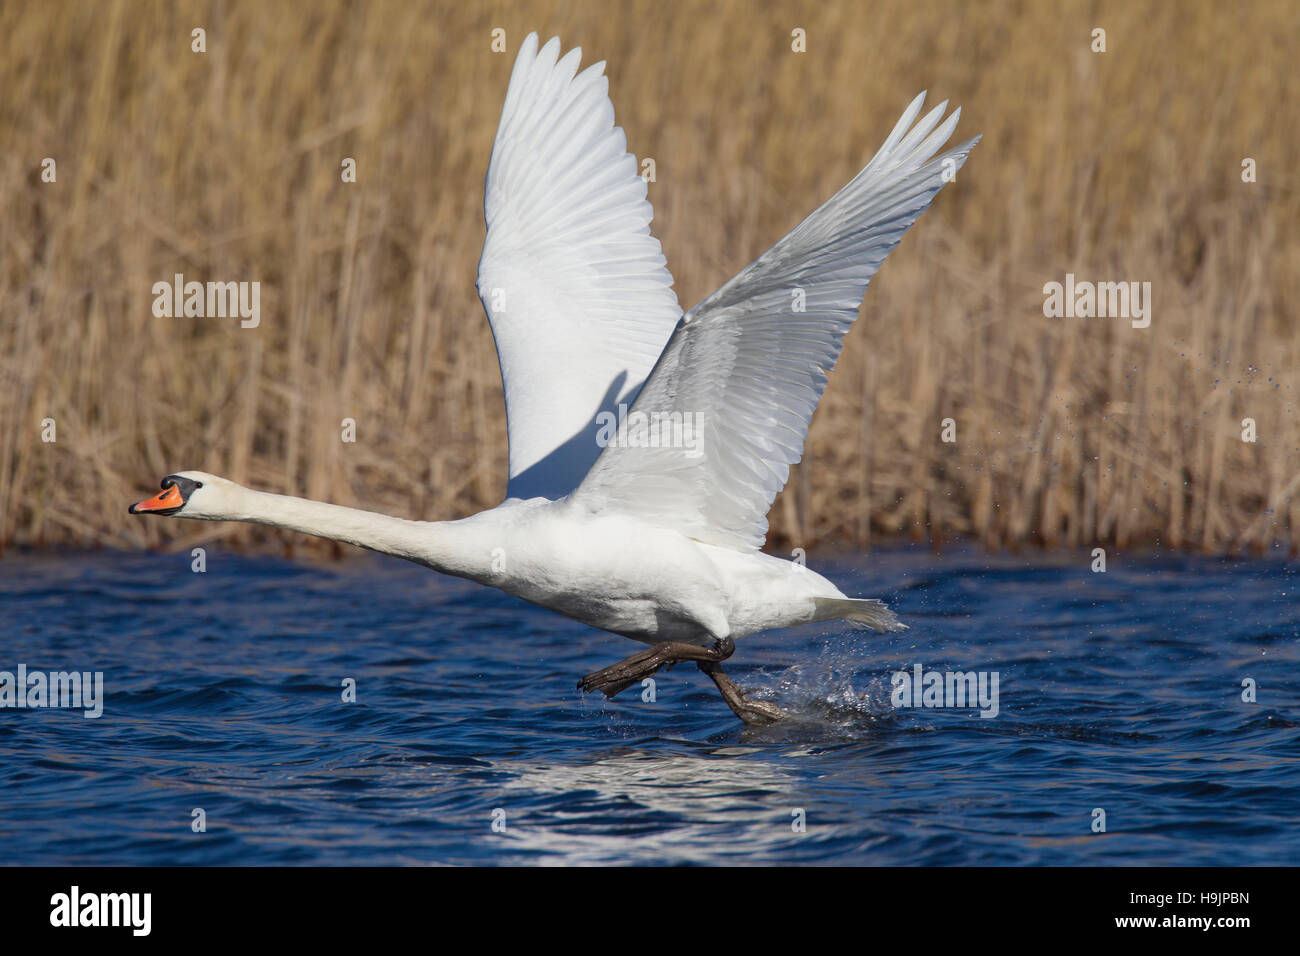 Mute swan (Cygnus olor) male taking off from lake in spring - Stock Image